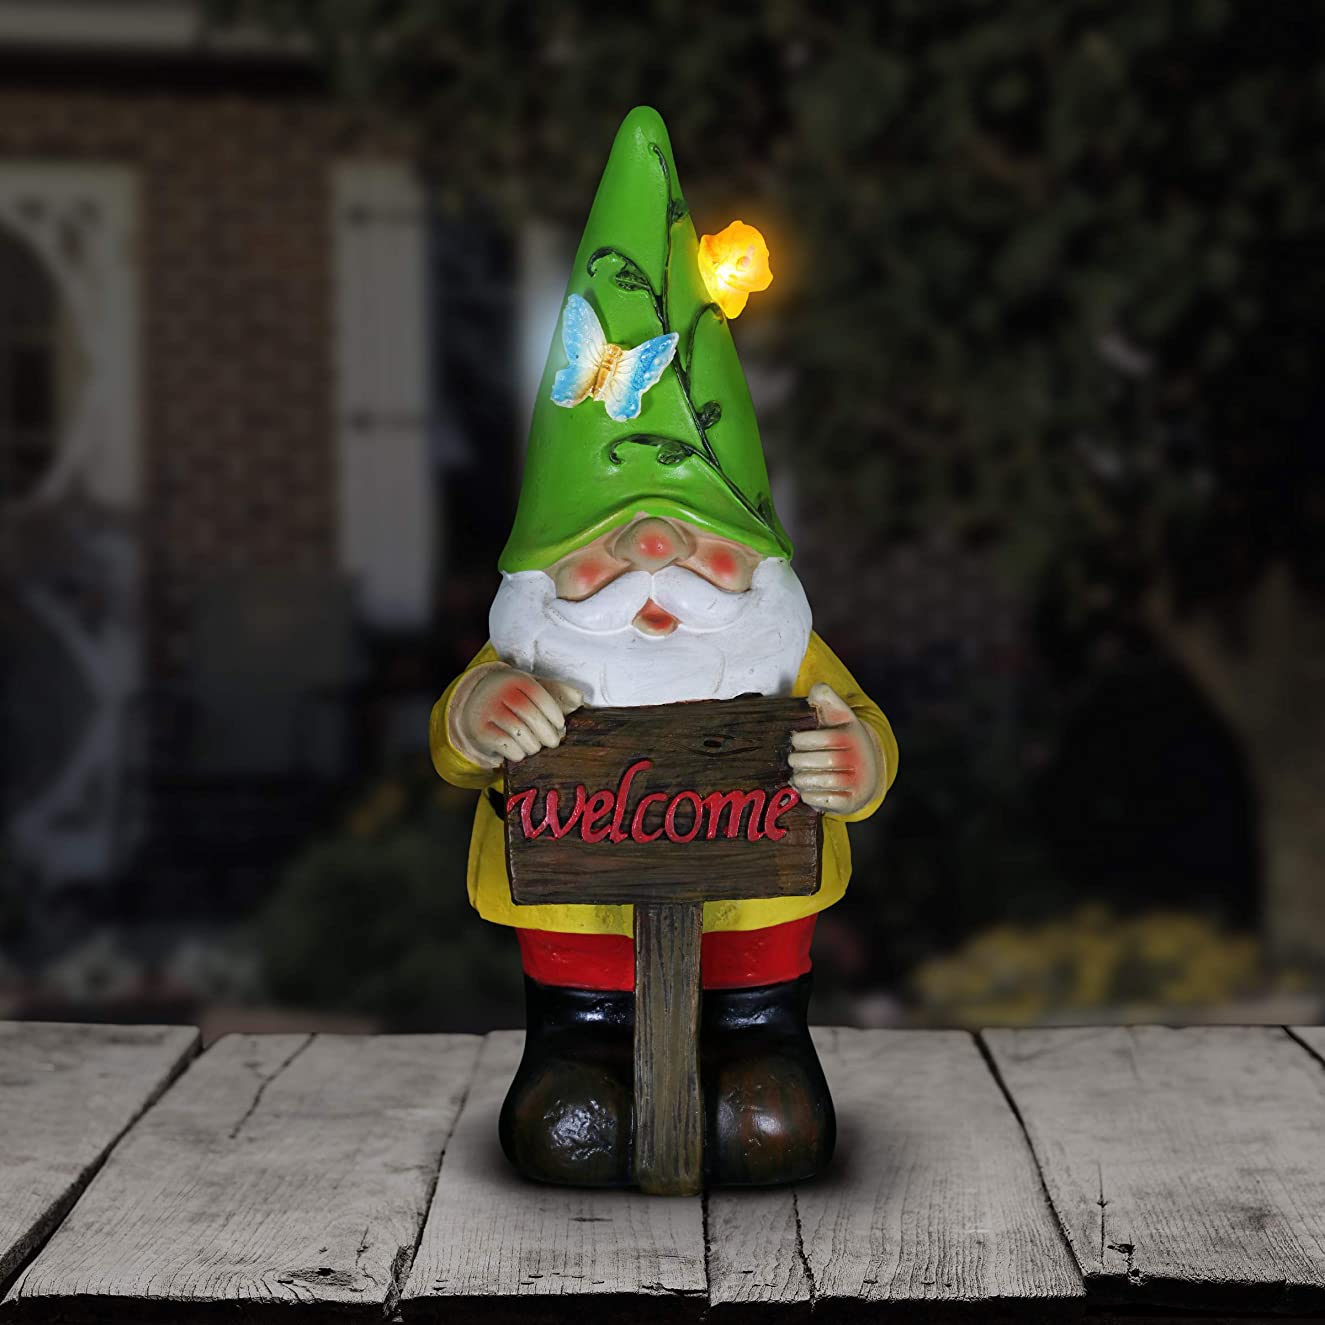 Exhart Solar Gnome Garden Statue w/Welcome Sign – Green Hat Gnome Resin Statue w/Wood-Like Welcome Sign - Solar Decor Lights in Butterfly & Snail Design - Elf Welcome Statue - 5